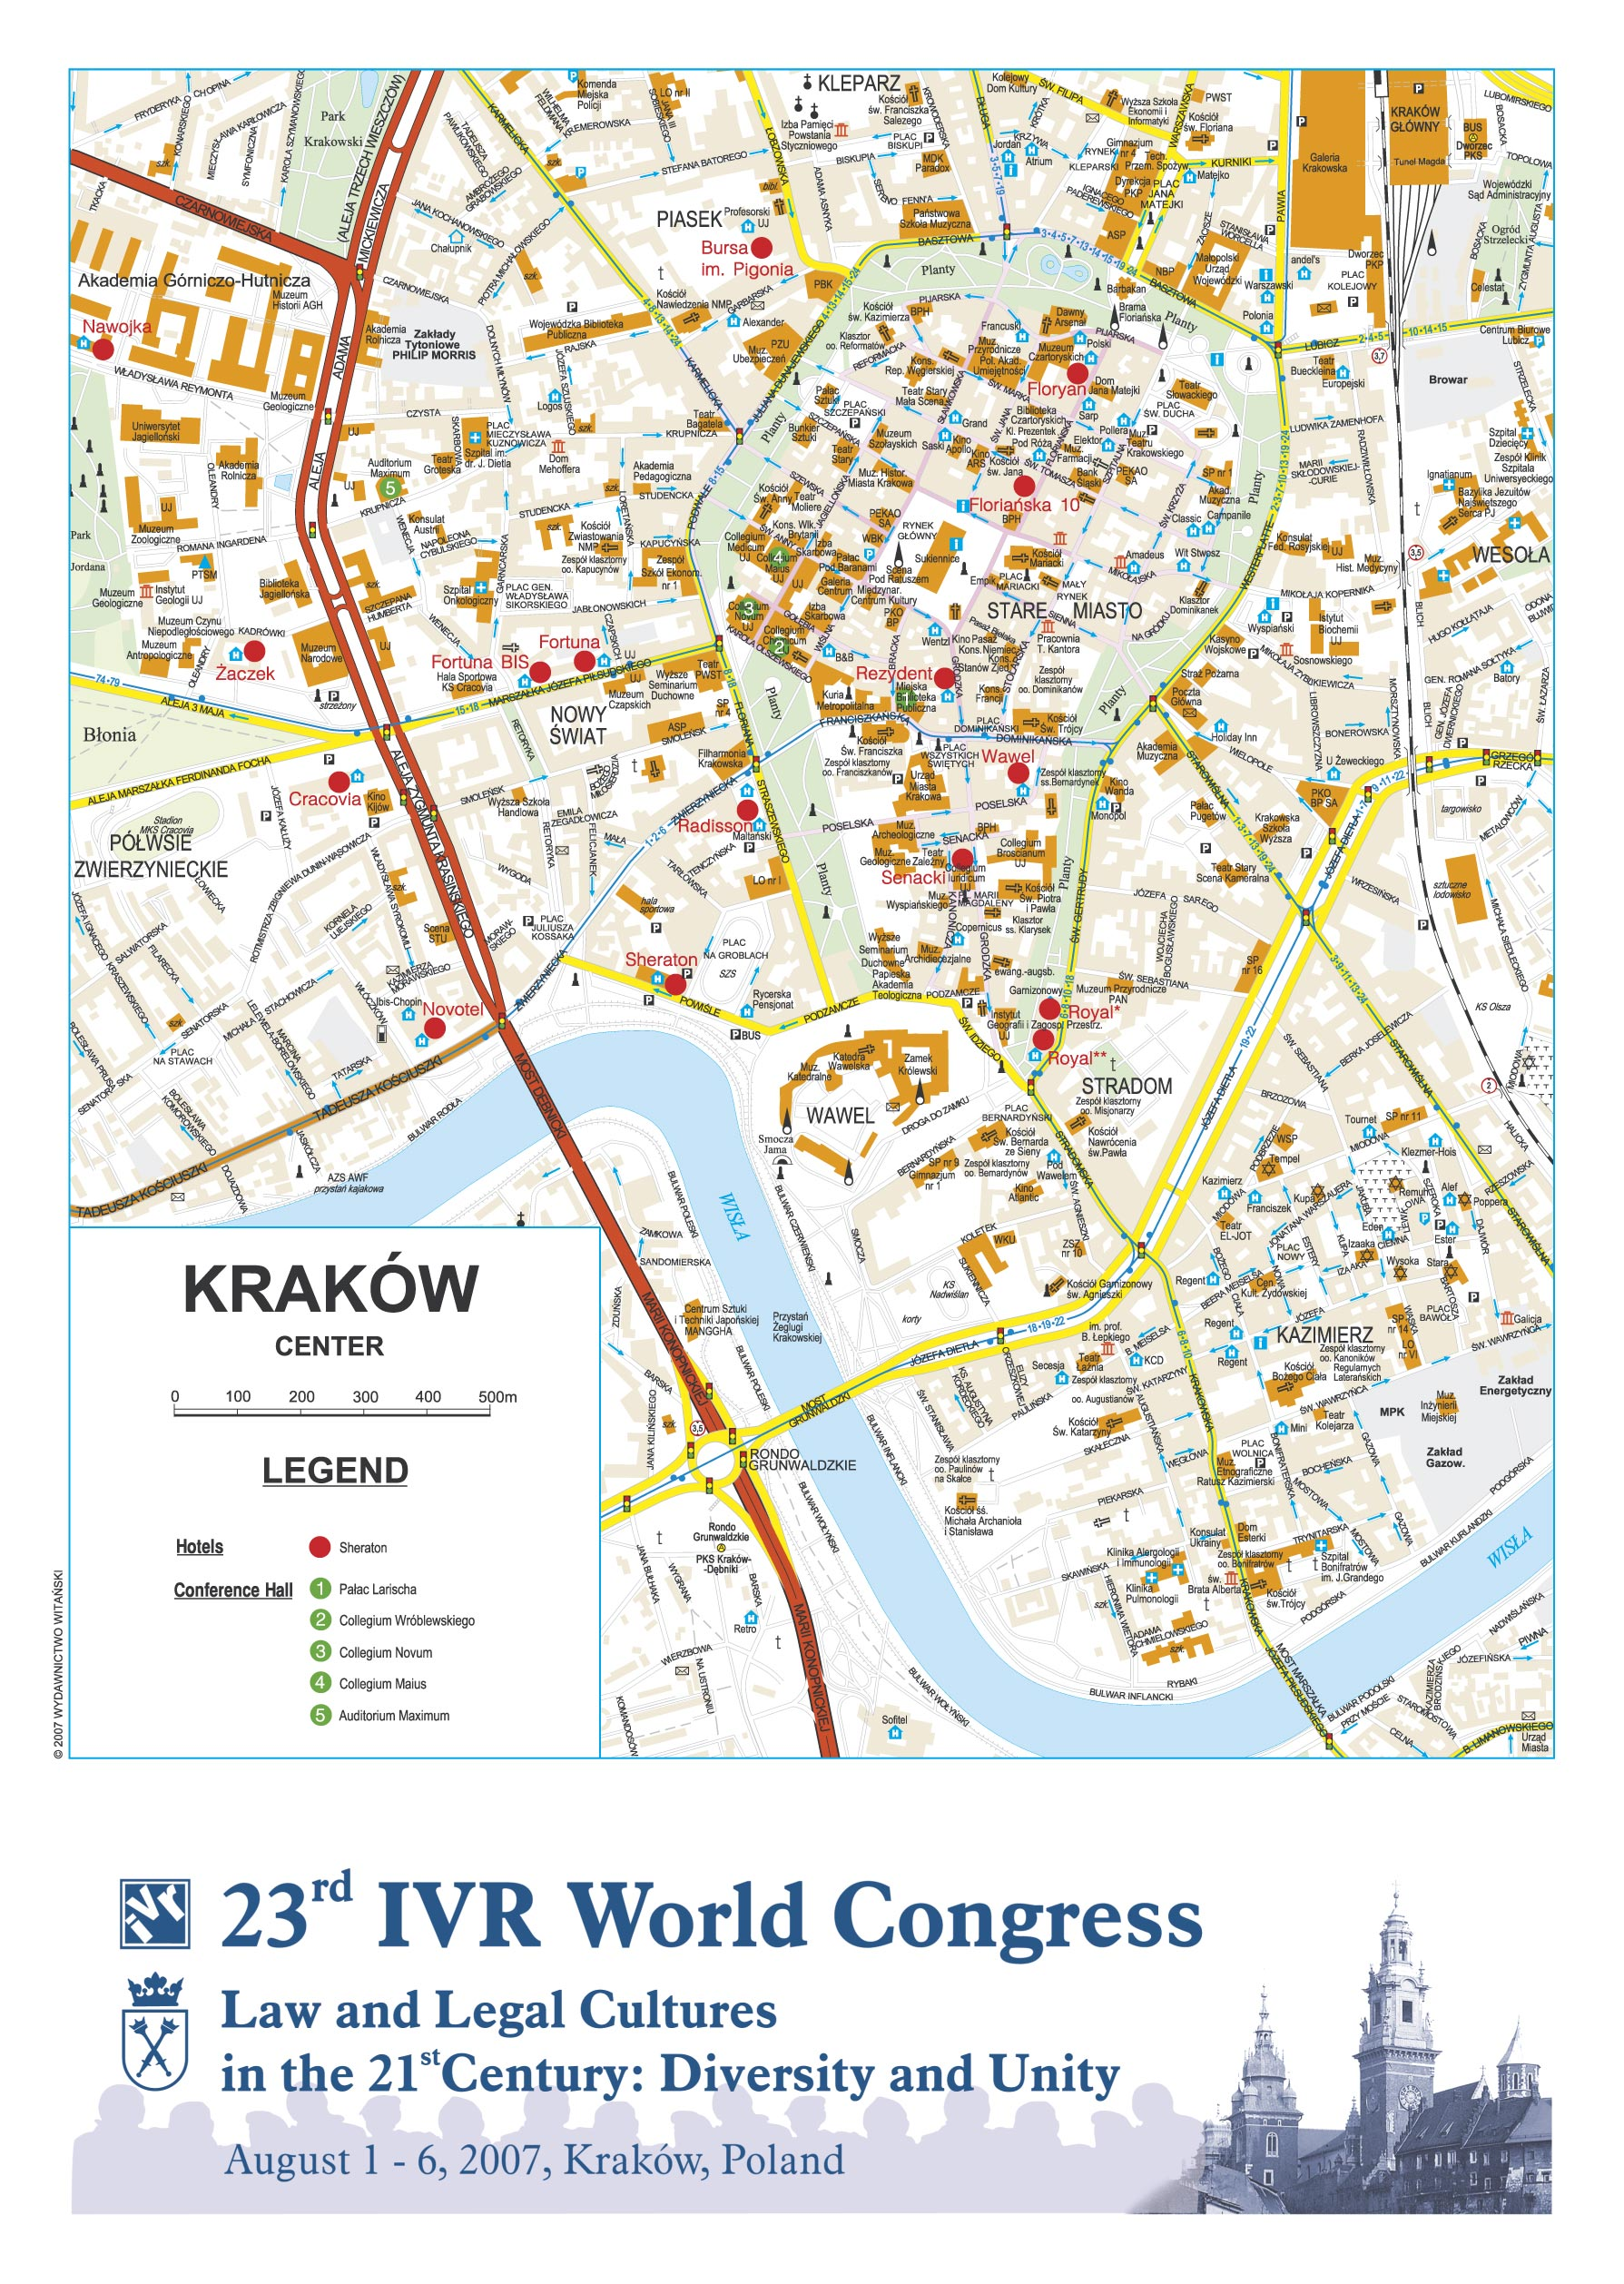 Krakow Map - Krakow Poland • mappery on jiangmen city map, venice map, wawel castle map, paris charles de gaulle map, poland map, poznan map, moscow map, bregenz austria map, naples map, kovno map, malopolska map, mielec map, stettin map, transilvania map, carpathian mountains map, singapore hotel map, cracovia polonia map, gdansk map, sarajevo map, milan map,